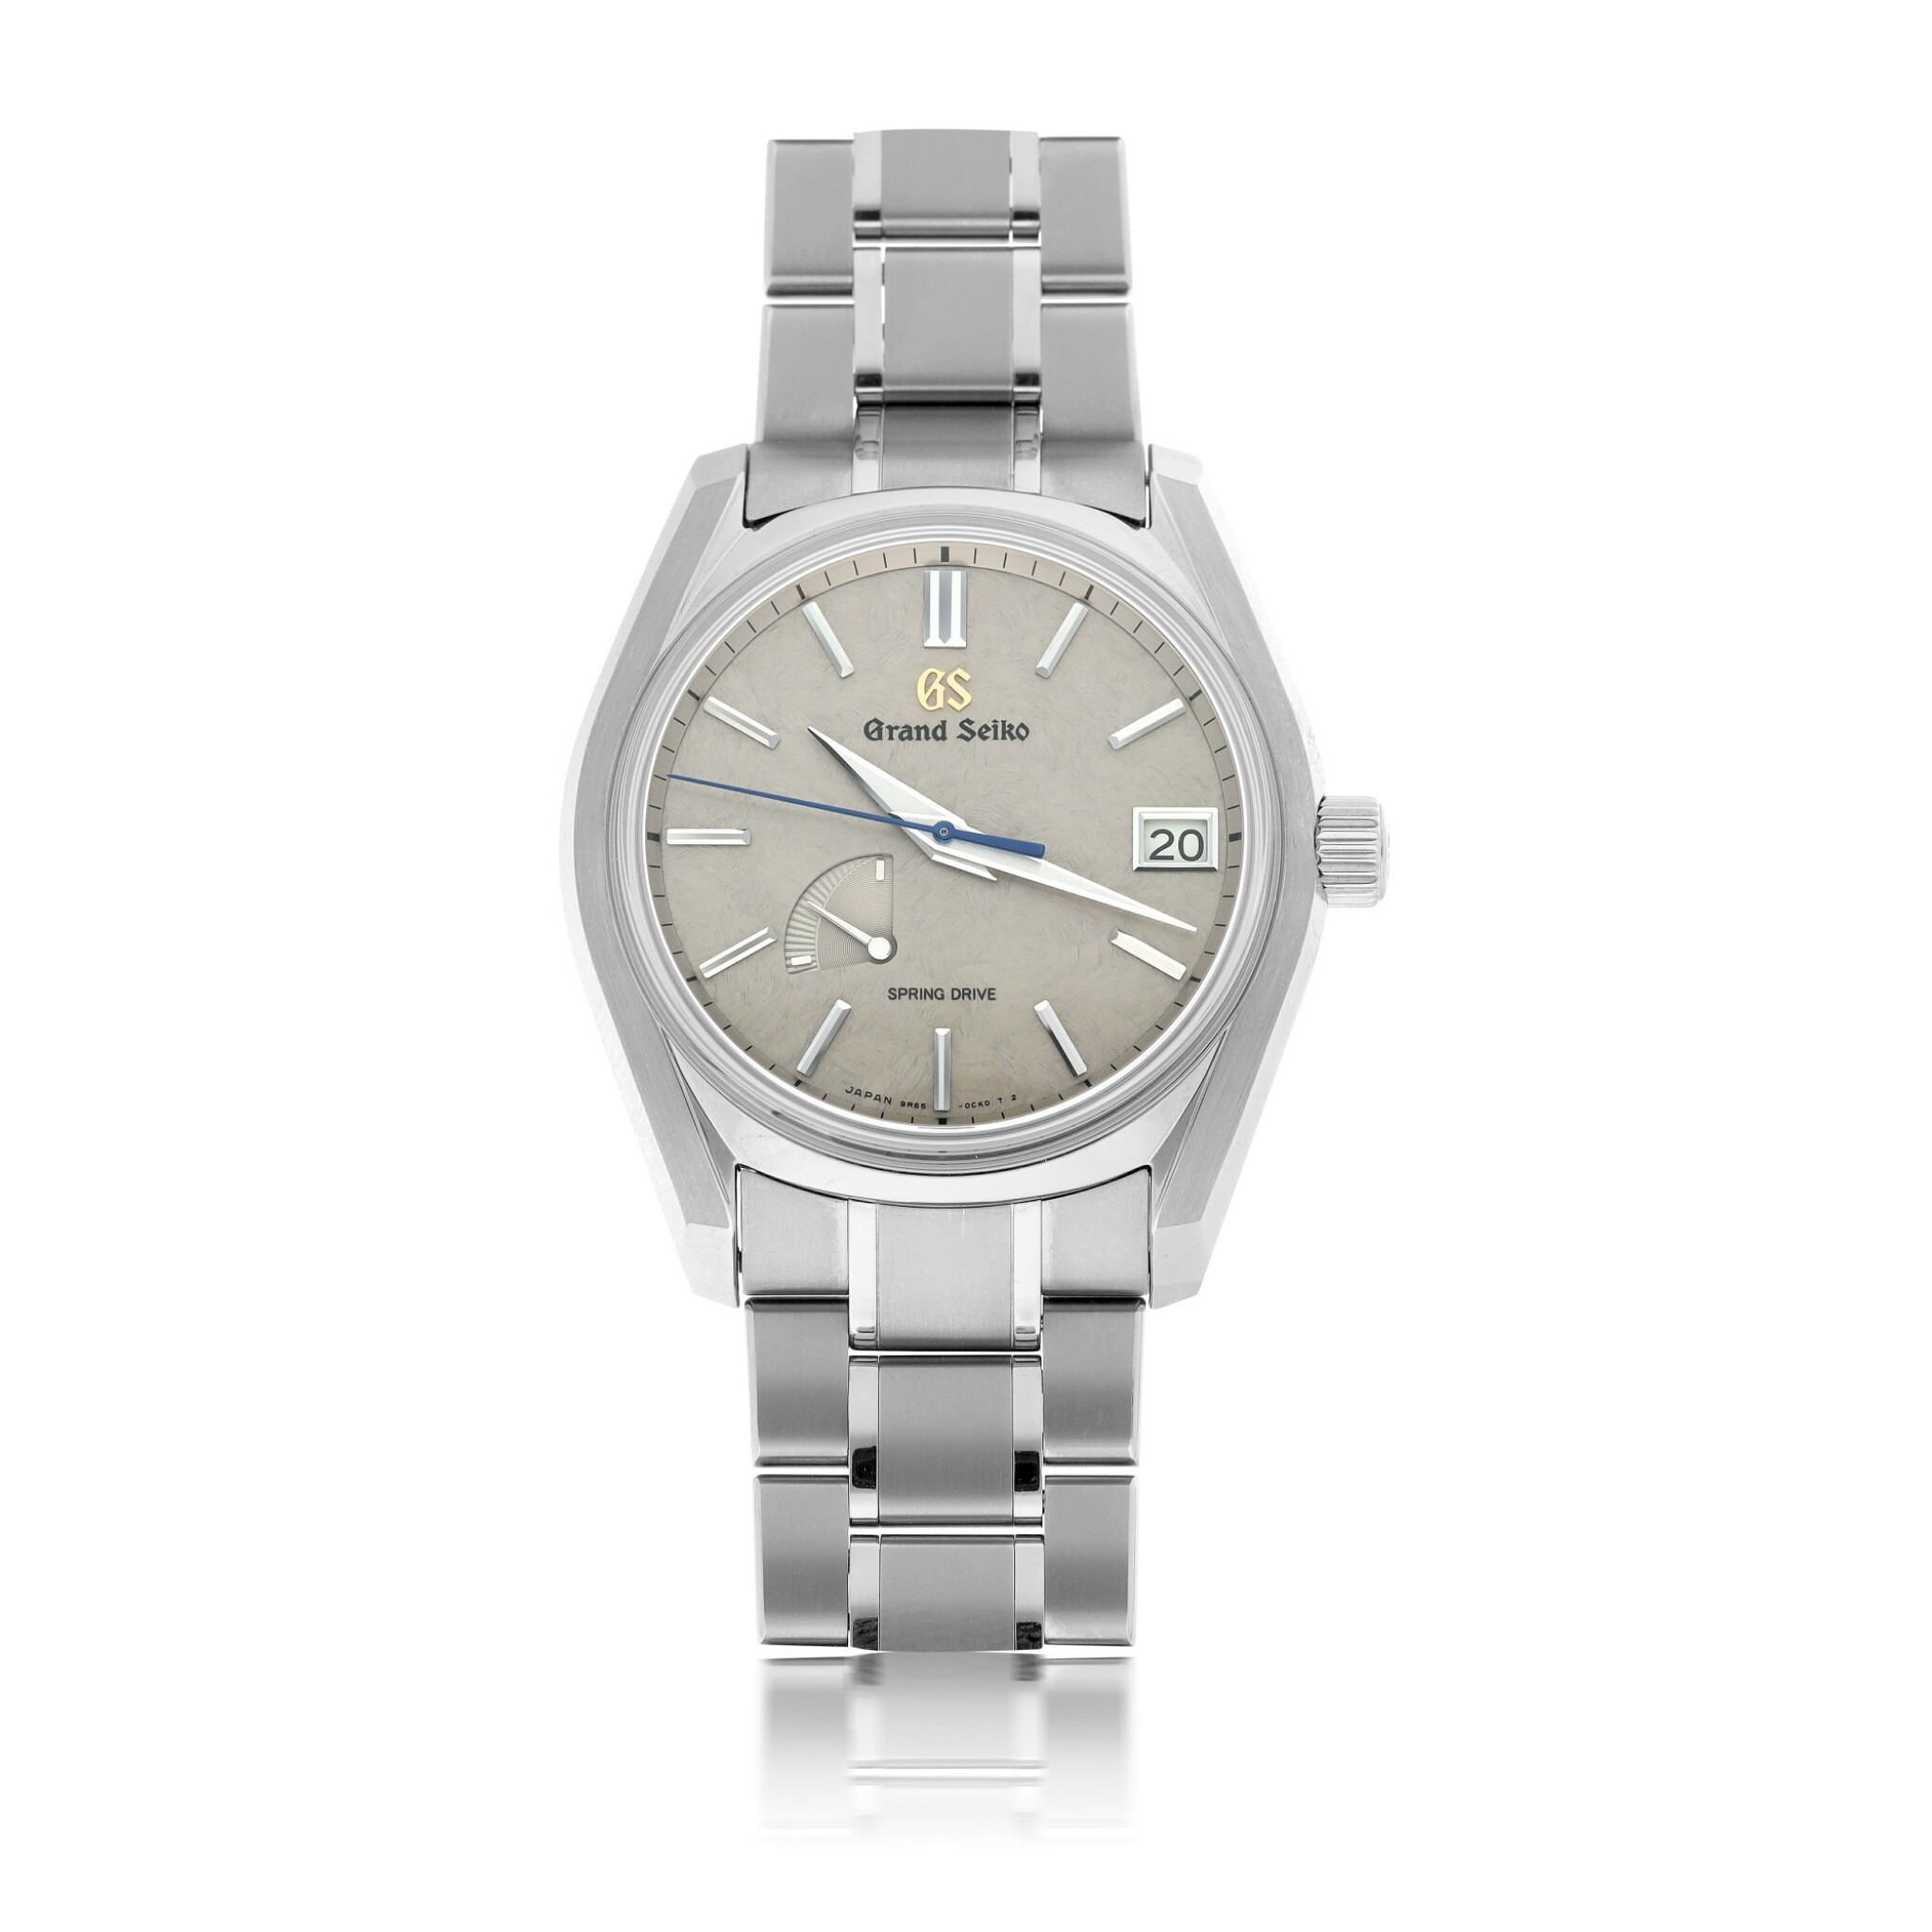 View full screen - View 1 of Lot 75. GRAND SEIKO   REF 9R65-0DG0 SPRING DRIVE, A TITANIUM AUTOMATIC CENTER SECONDS WRISTWATCH WITH DATE AND POWER RESERVE INDICATION CIRCA 2017.